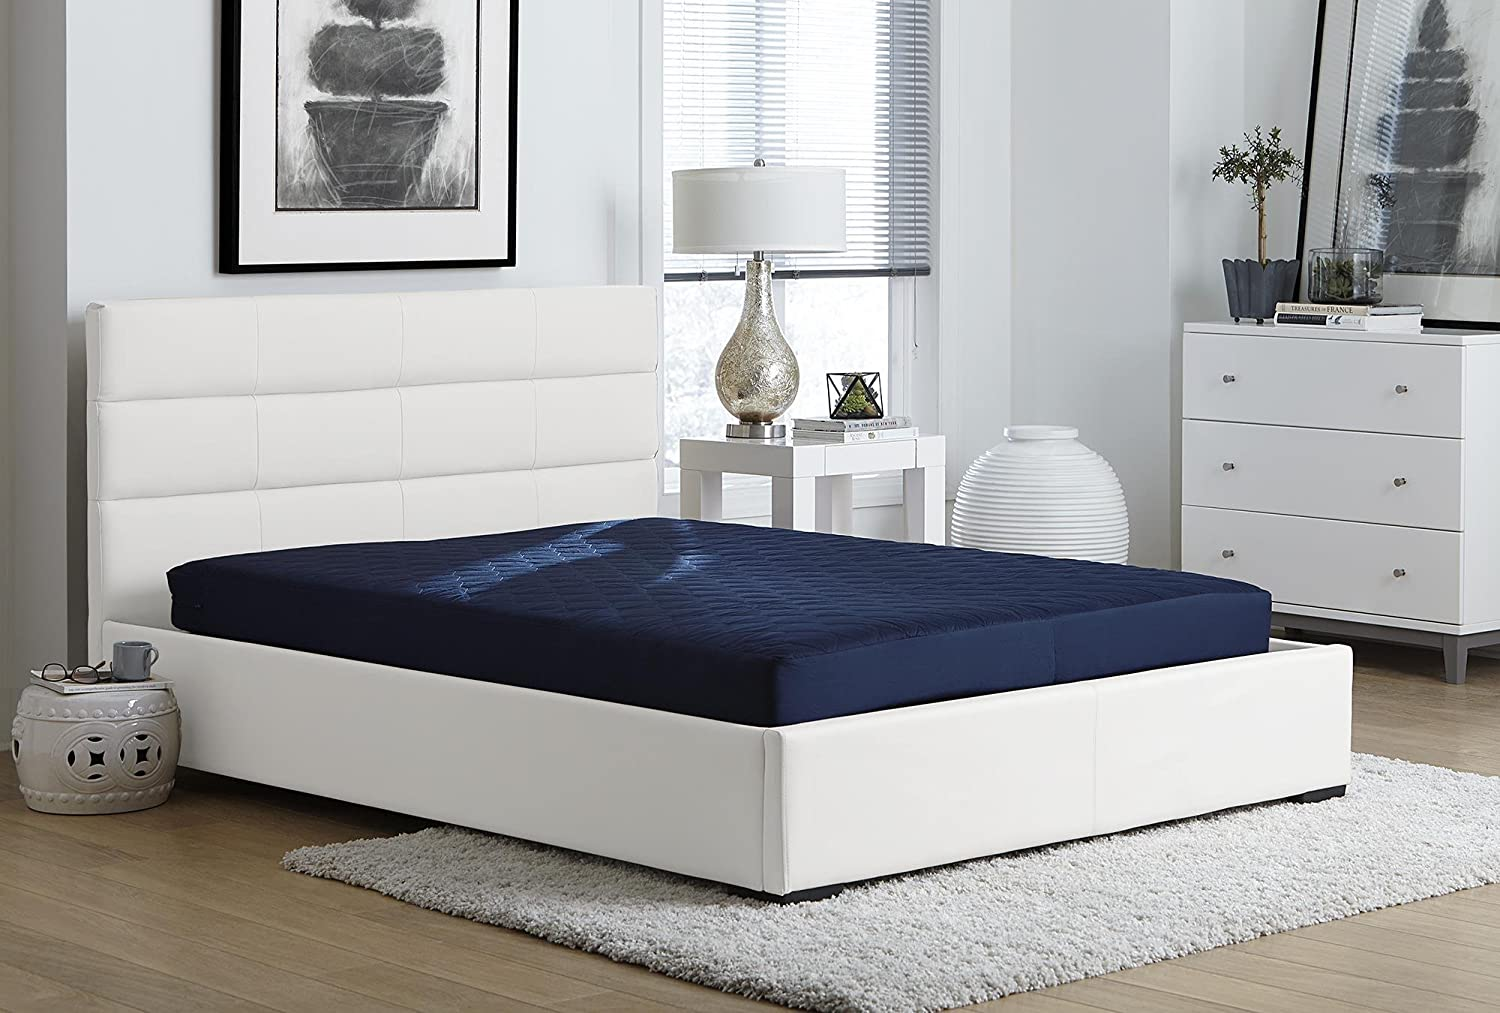 55% OFF DHP Shipping included 6 Inch Quilted Mattress Full Blue